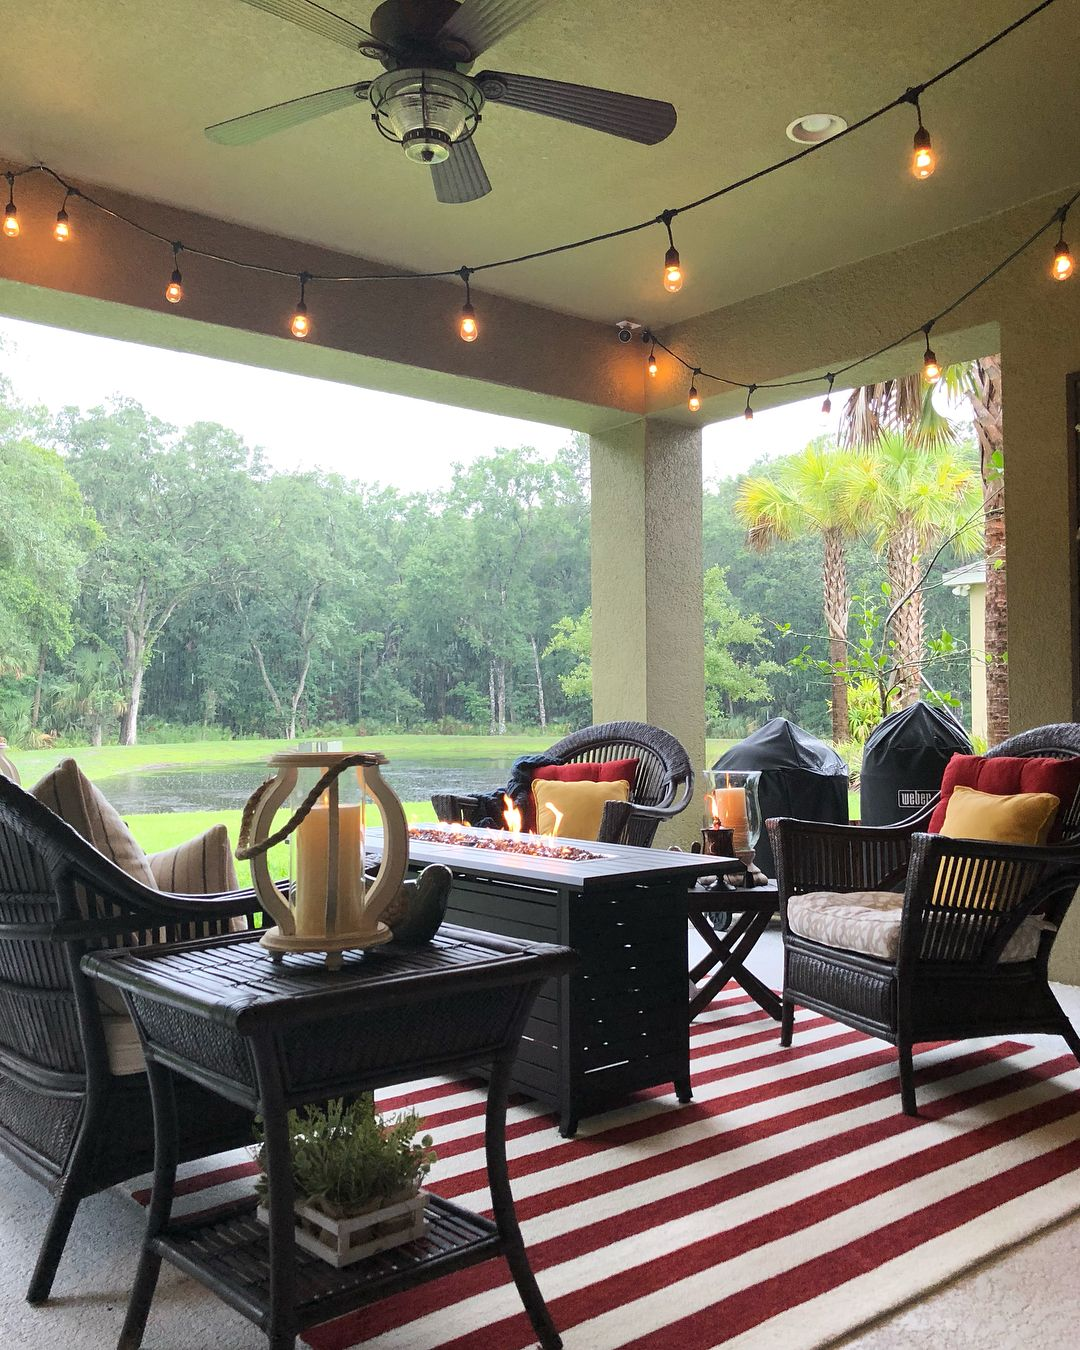 Love The Fire Pit Table And String Lights Melonie Tampa Fl Themellionairehouse Instagram Photos Videos